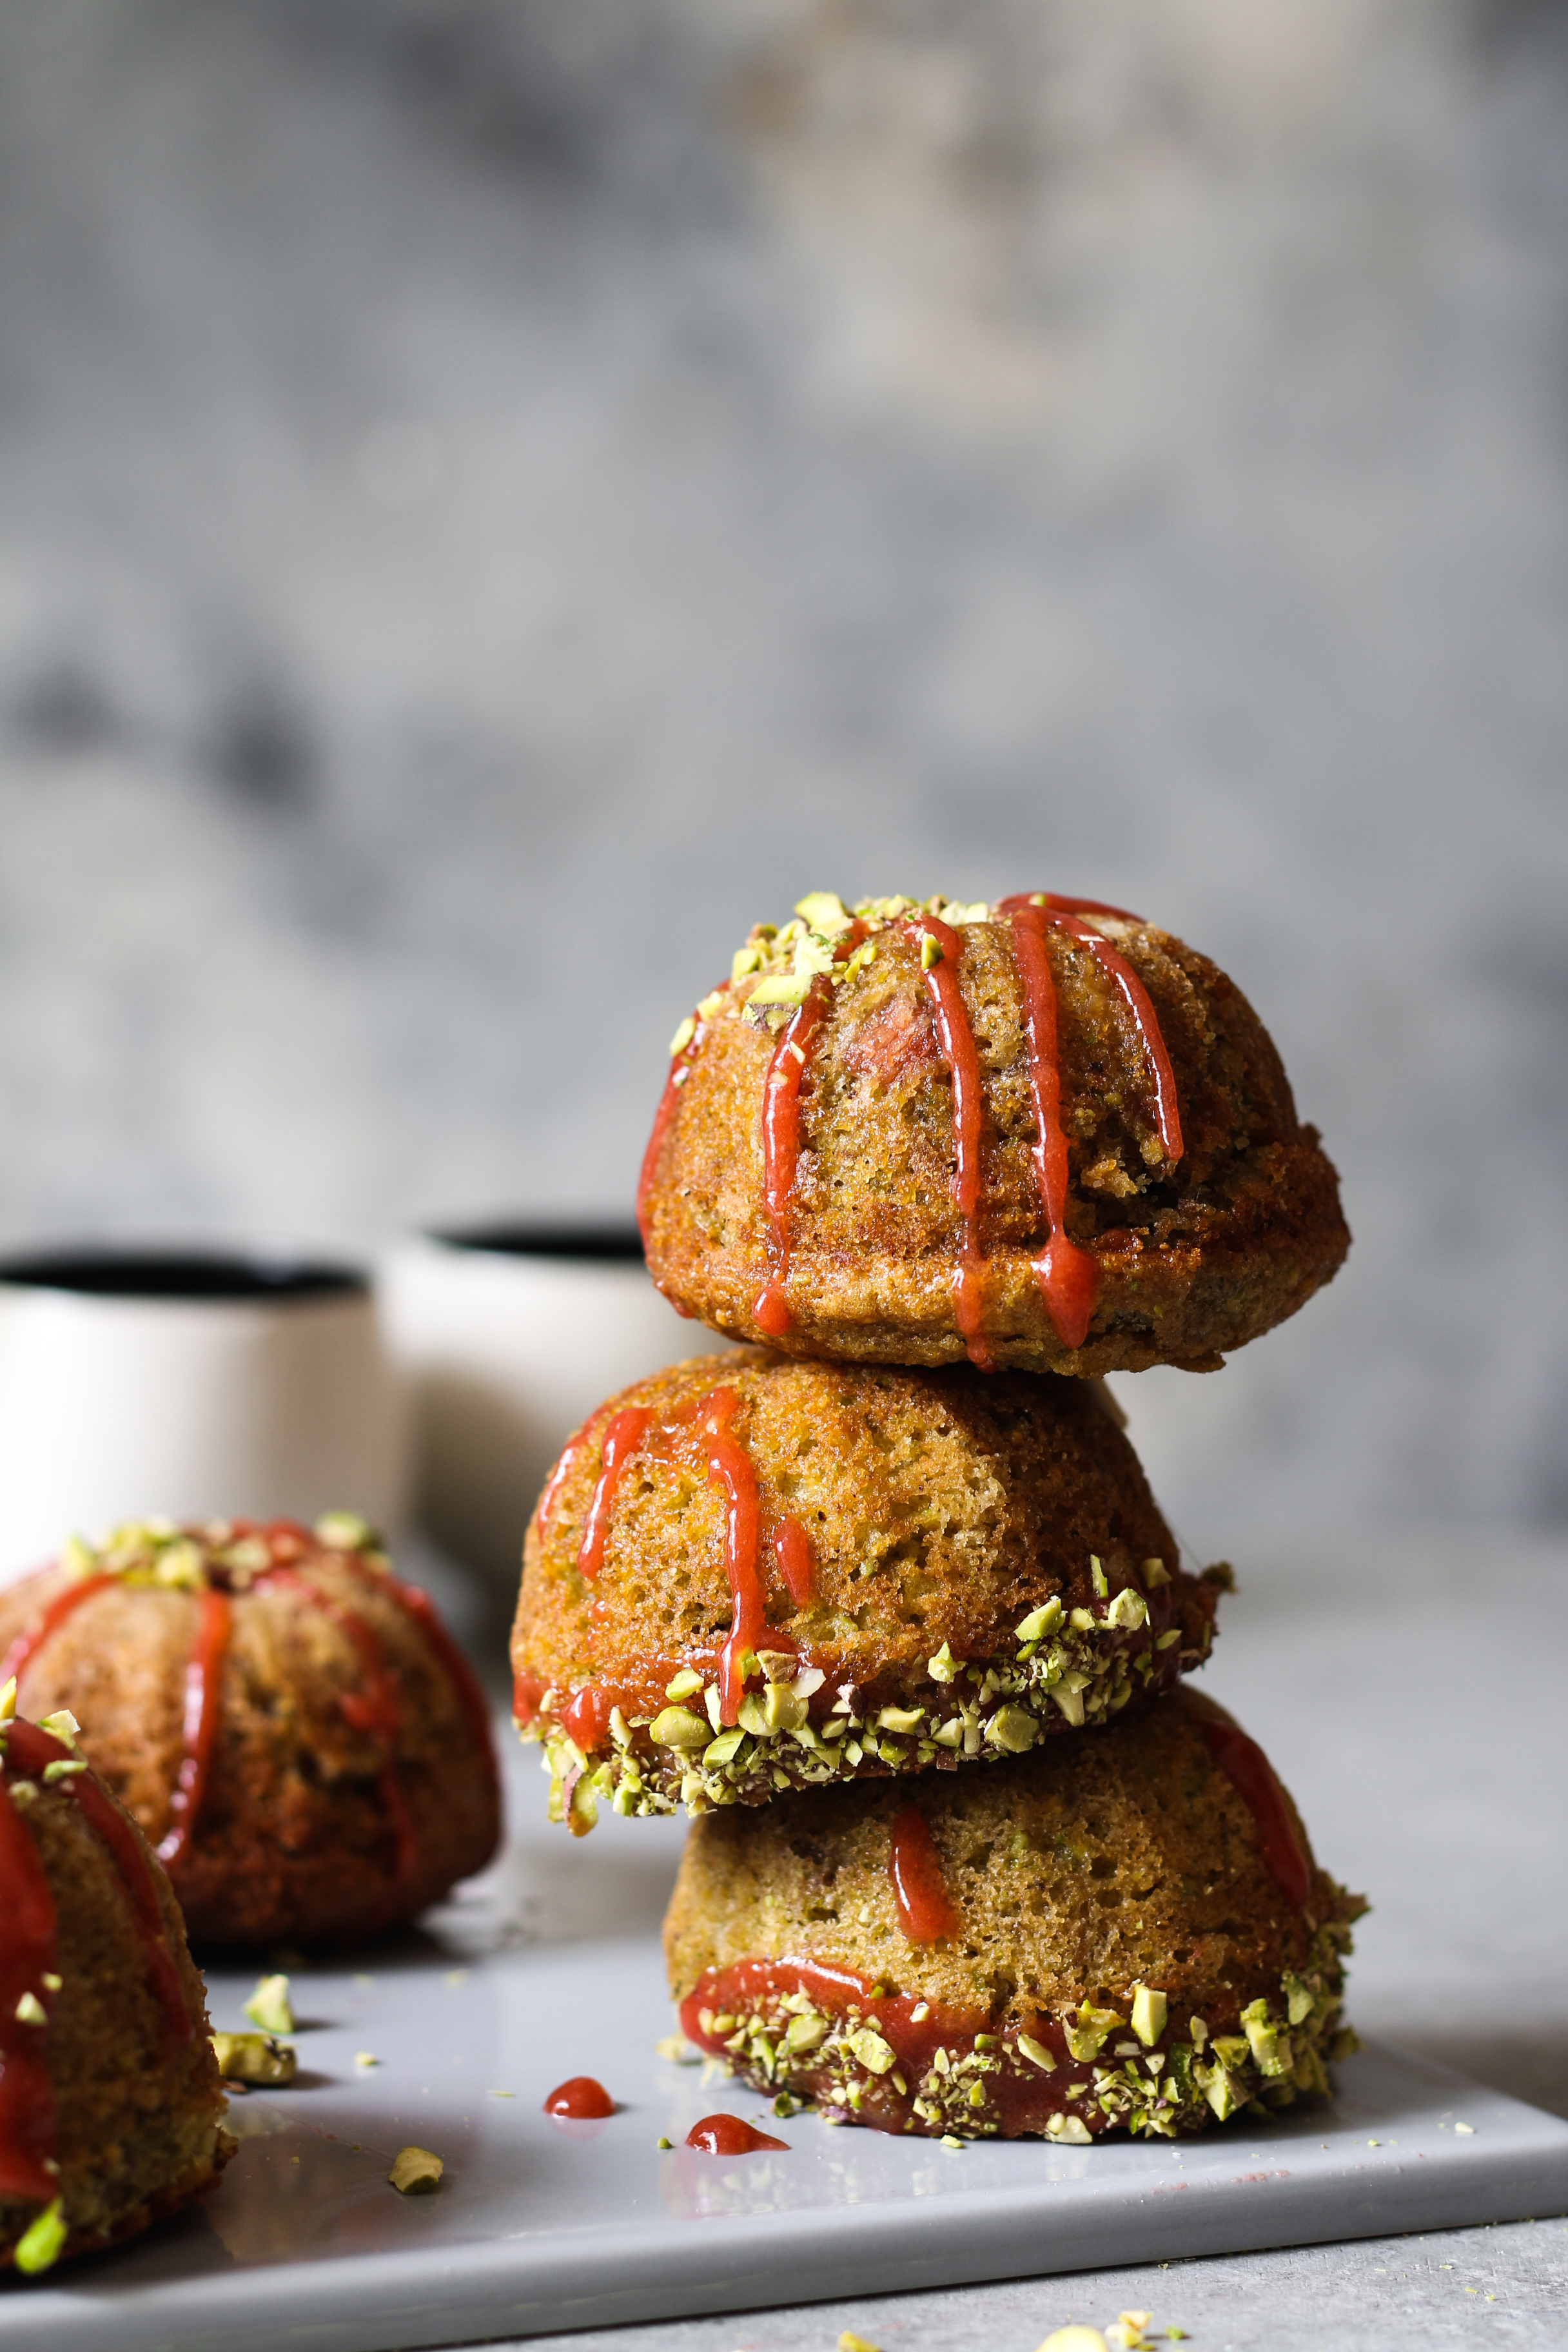 Rhubarb-Pistachio Mini Cakes for Mother's day |foodfashionparty| #mothersday #mini cakes